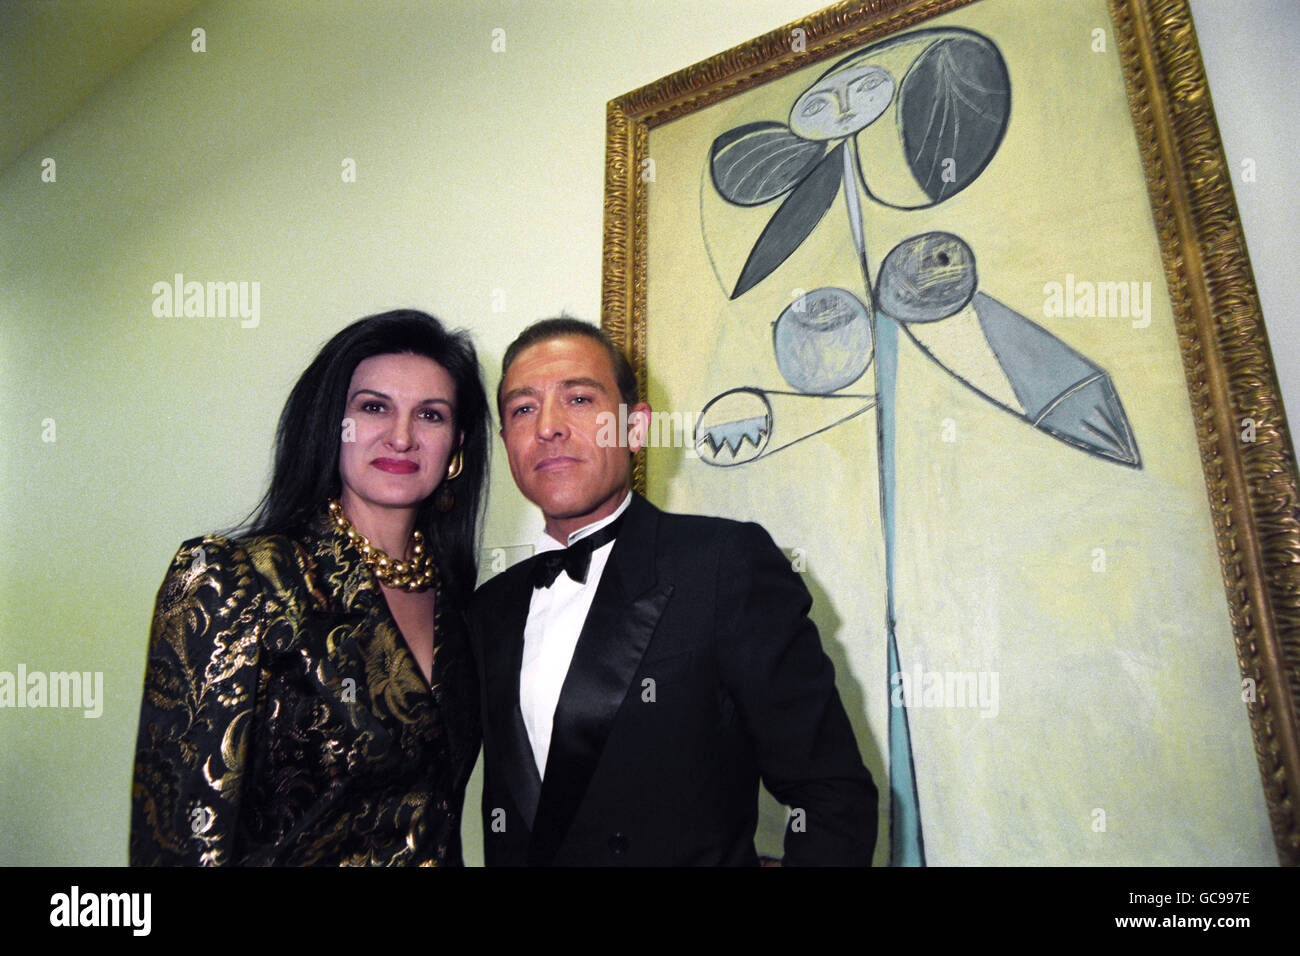 Paloma Picasso Paloma Picasso And Her Husband Stock Photos Paloma Picasso And